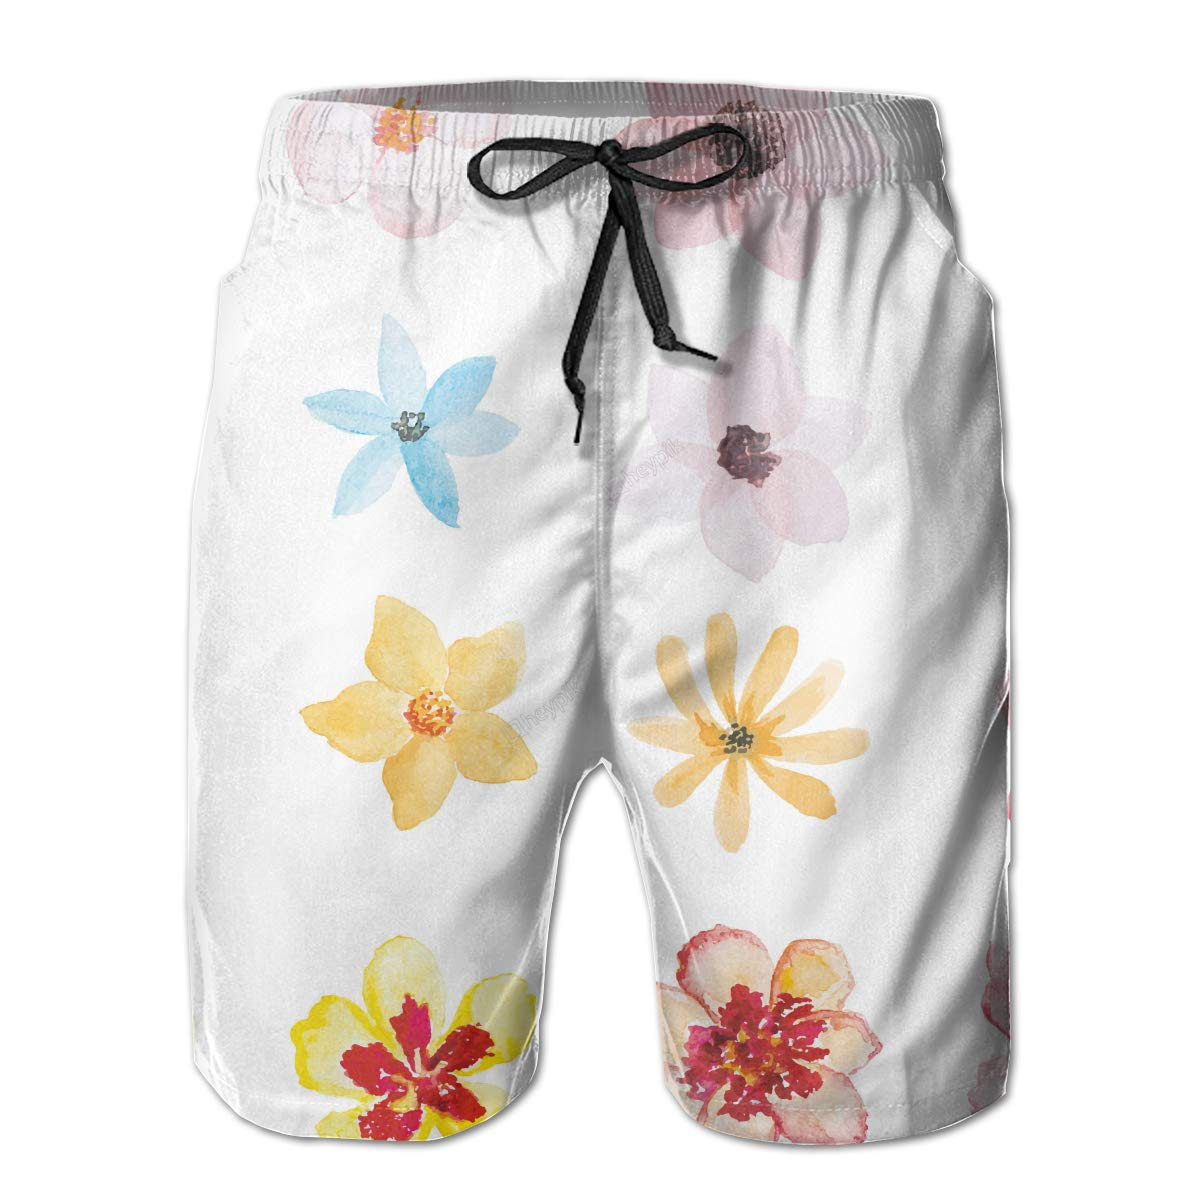 Leisue Colorful Flowers Quick Dry Elastic Lace Boardshorts Beach Shorts Pants Swim Trunks Fitted Mens Swimsuit with Pockets